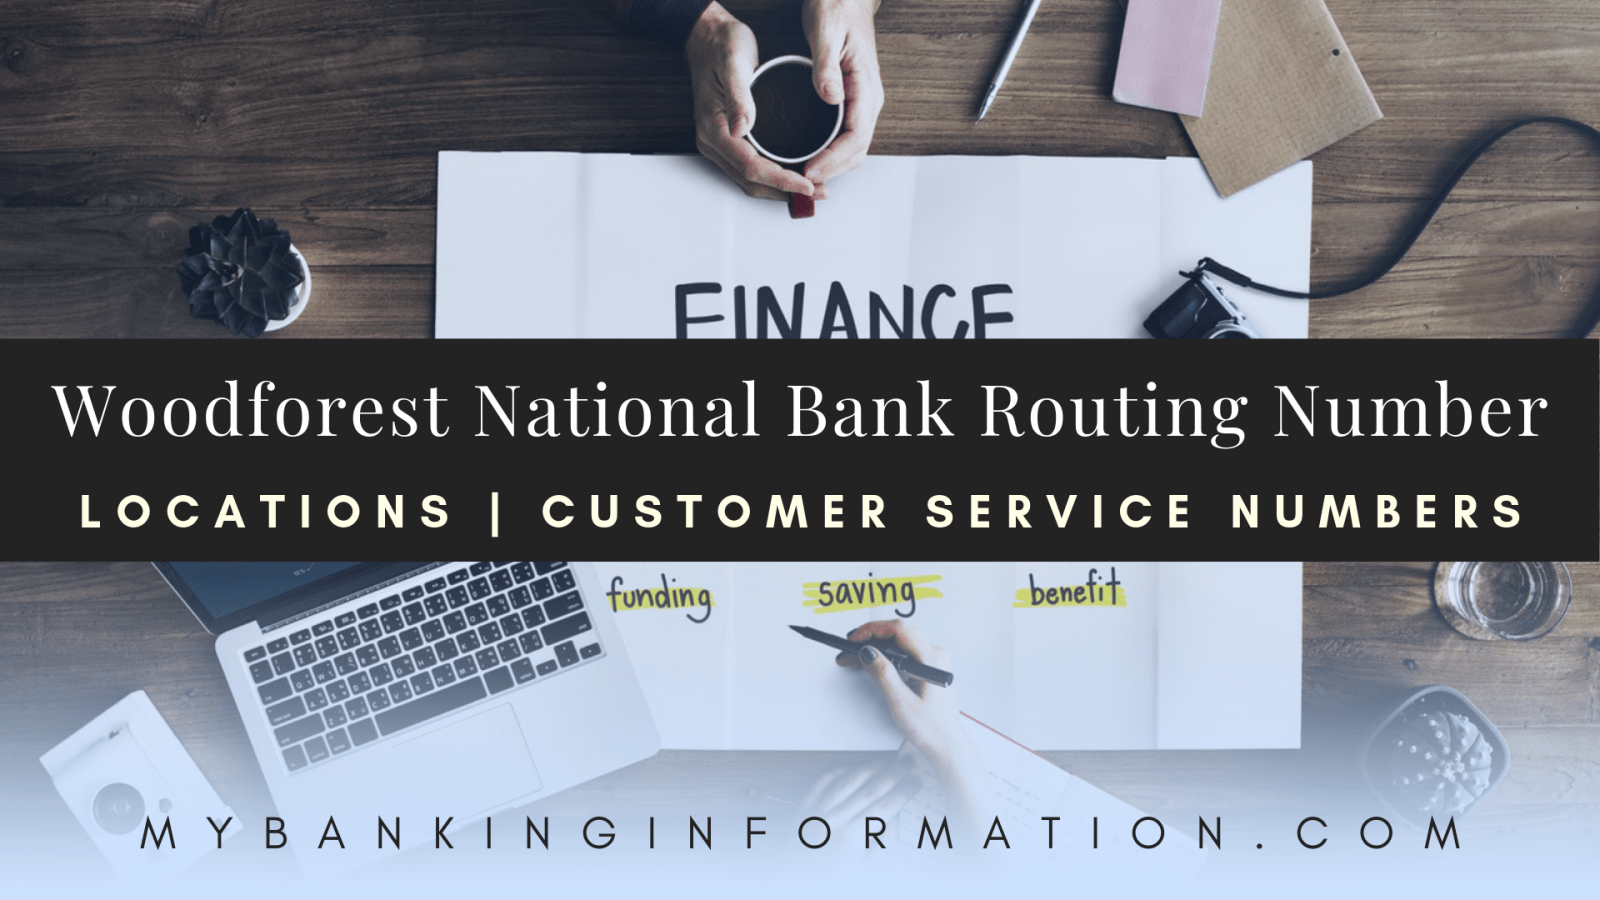 Woodforest National Bank Routing Number | Locations | Customer Service